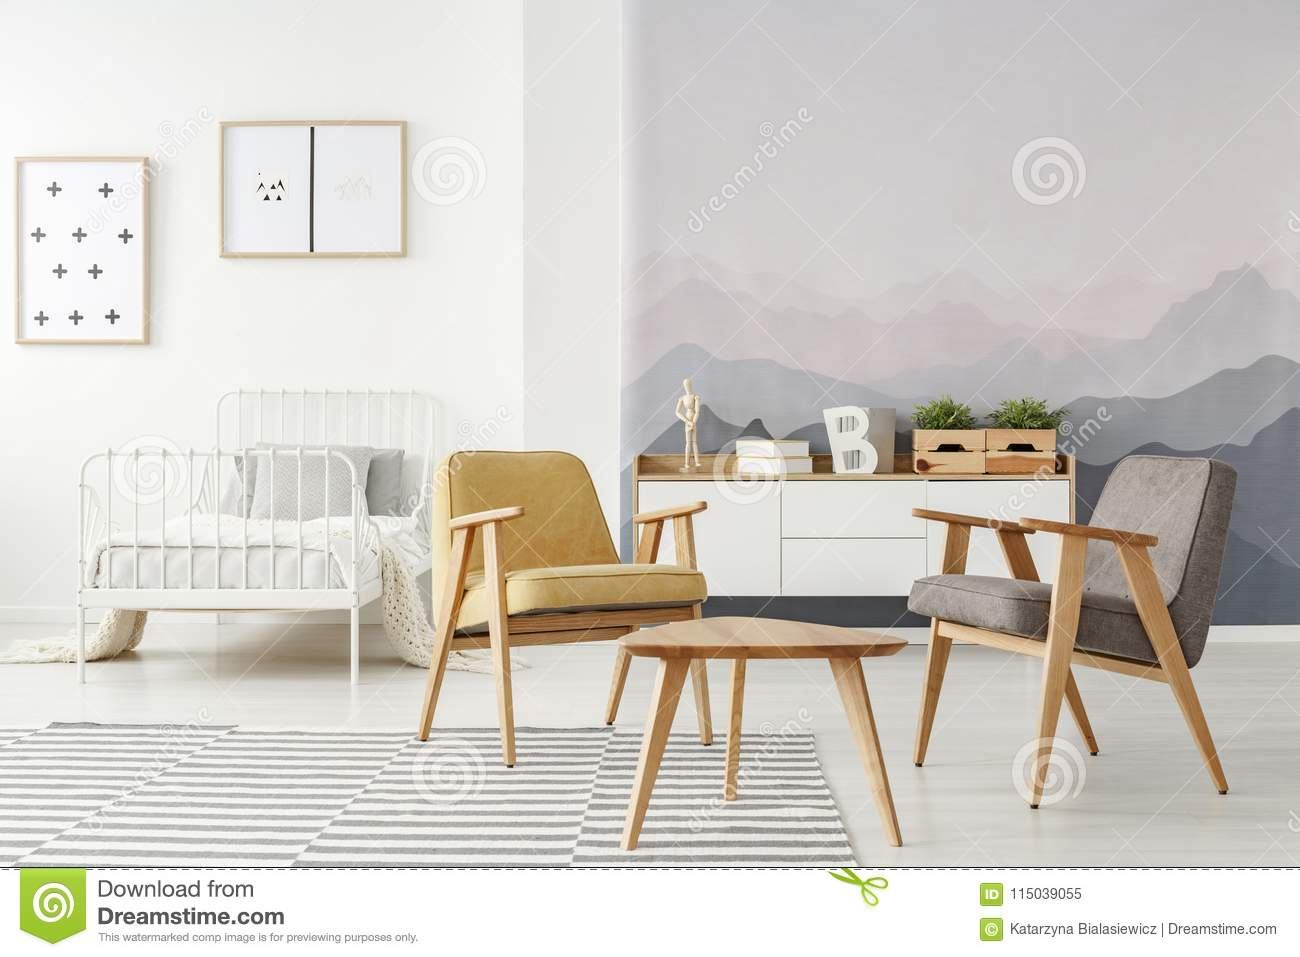 Kids Bedroom With Armchairs Stock Image - Image of armchairs ...